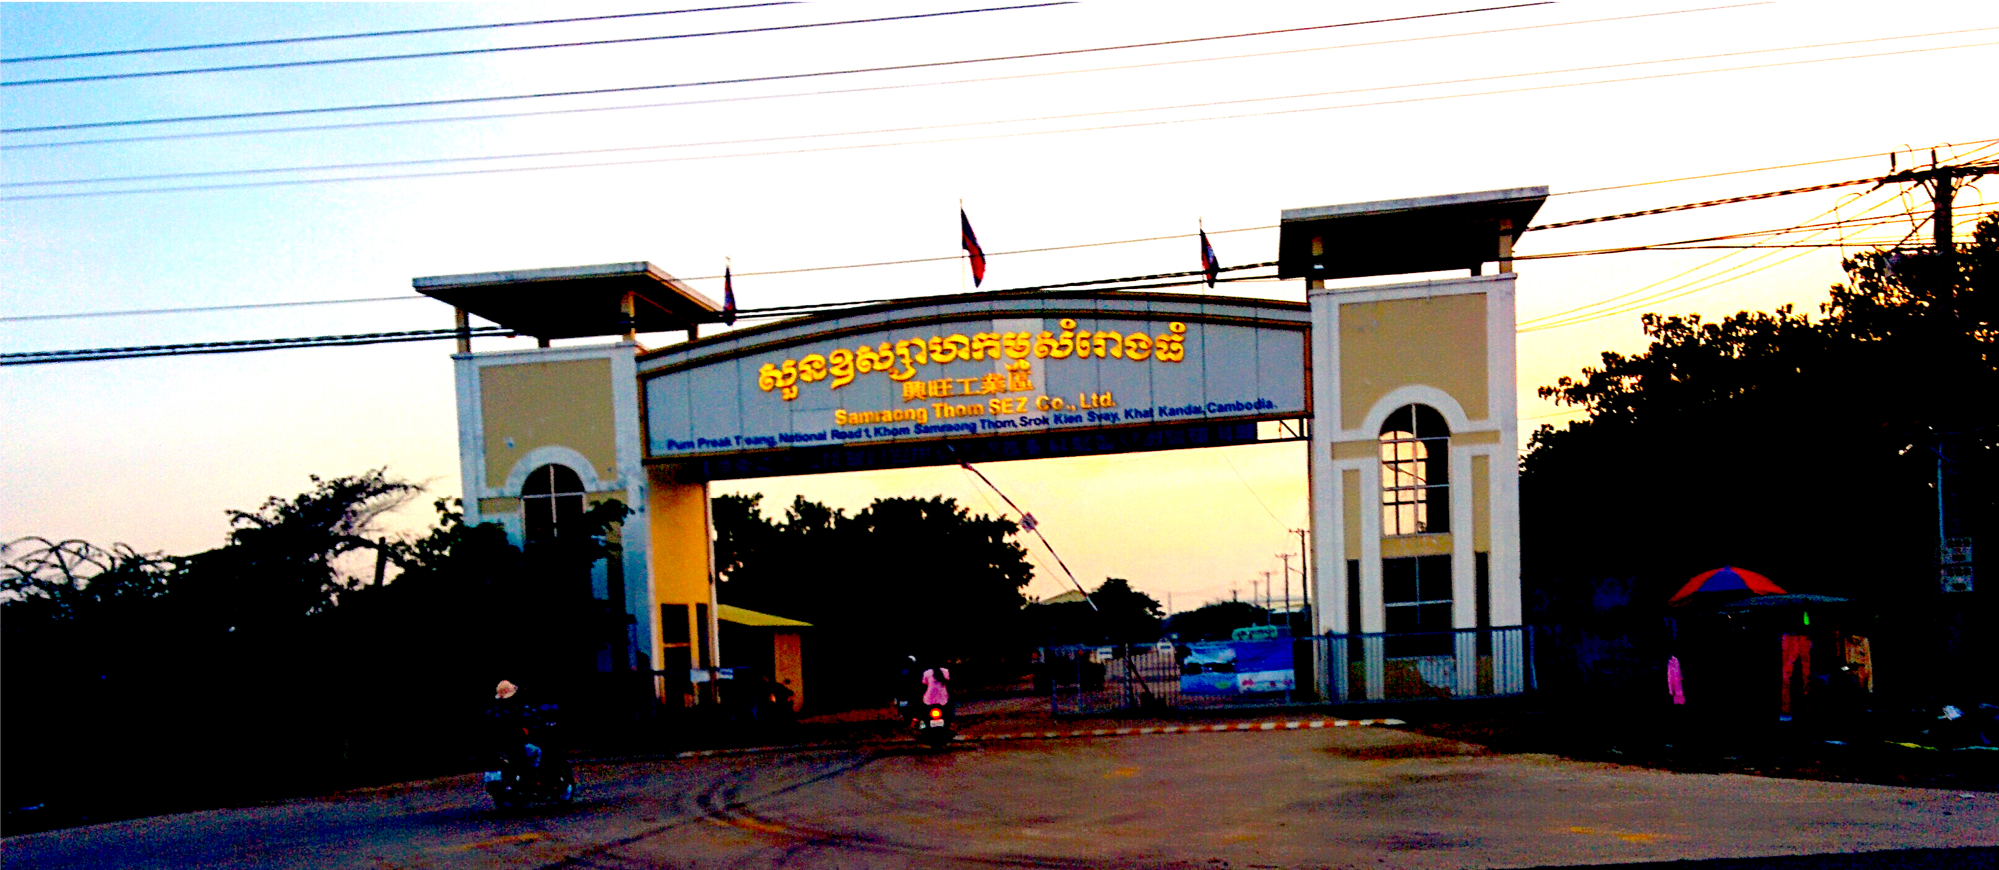 The Golden Gates of Globalisation. A factory in Cambodia where village girls offer themselves as wage slaves. New Zealand and Sweden benefit from globalisation and see little responsibility to reduce the risks for Cambodian village girls working for $1 a day. Human insurance schemes are not at planetary scale yet.